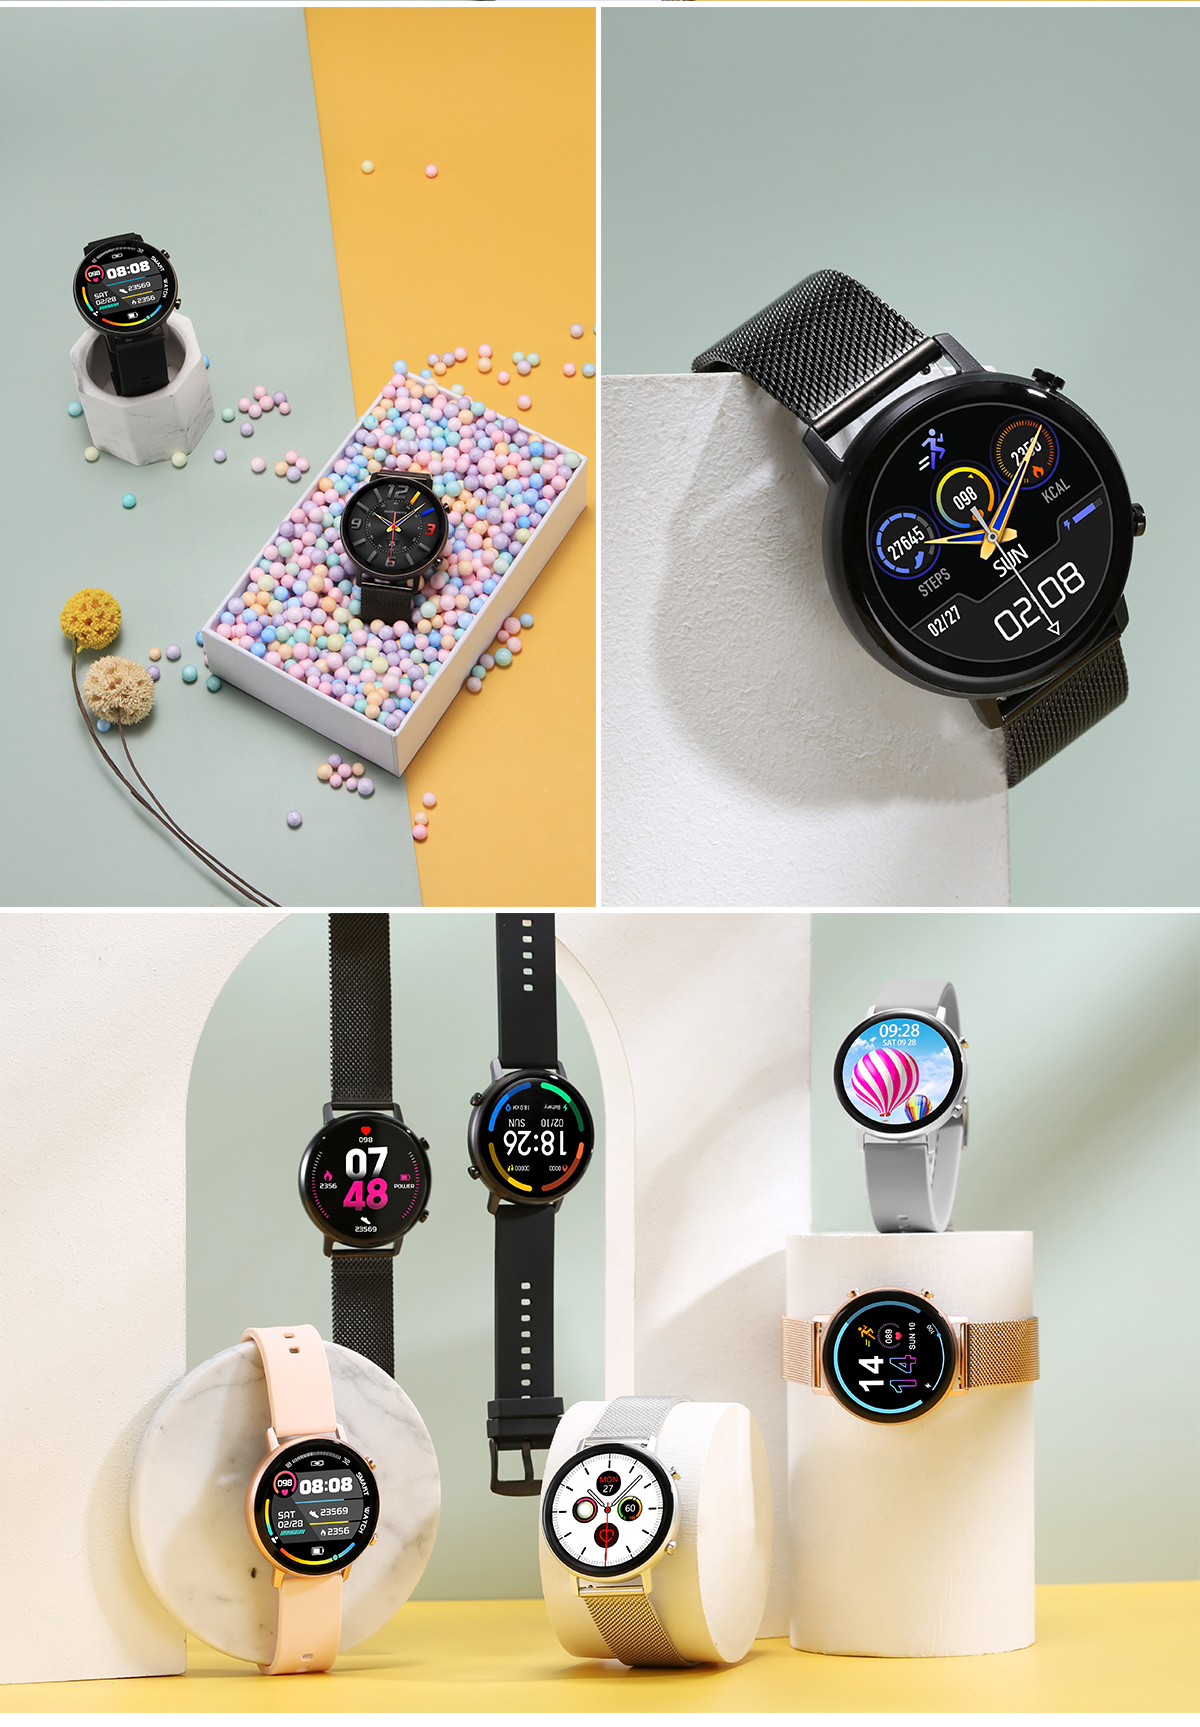 DT No.1 DT96 Smart watch 4